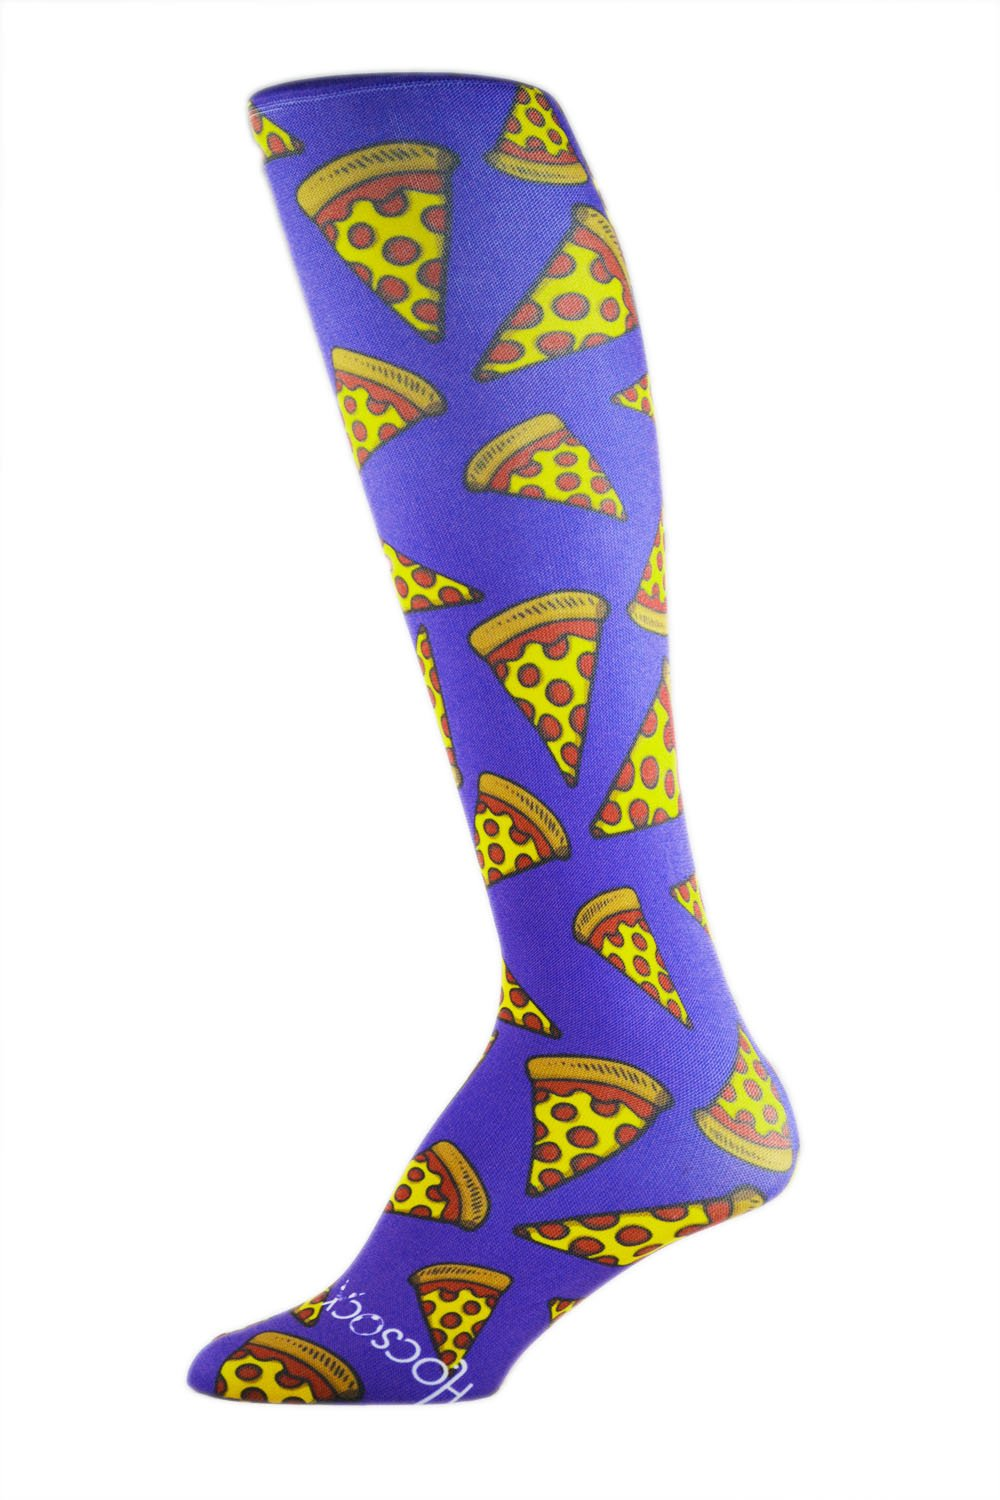 Hocsocx Shin Liners UNDER shin pad socks for Football/Hockey for girls and women-Fun Patterns